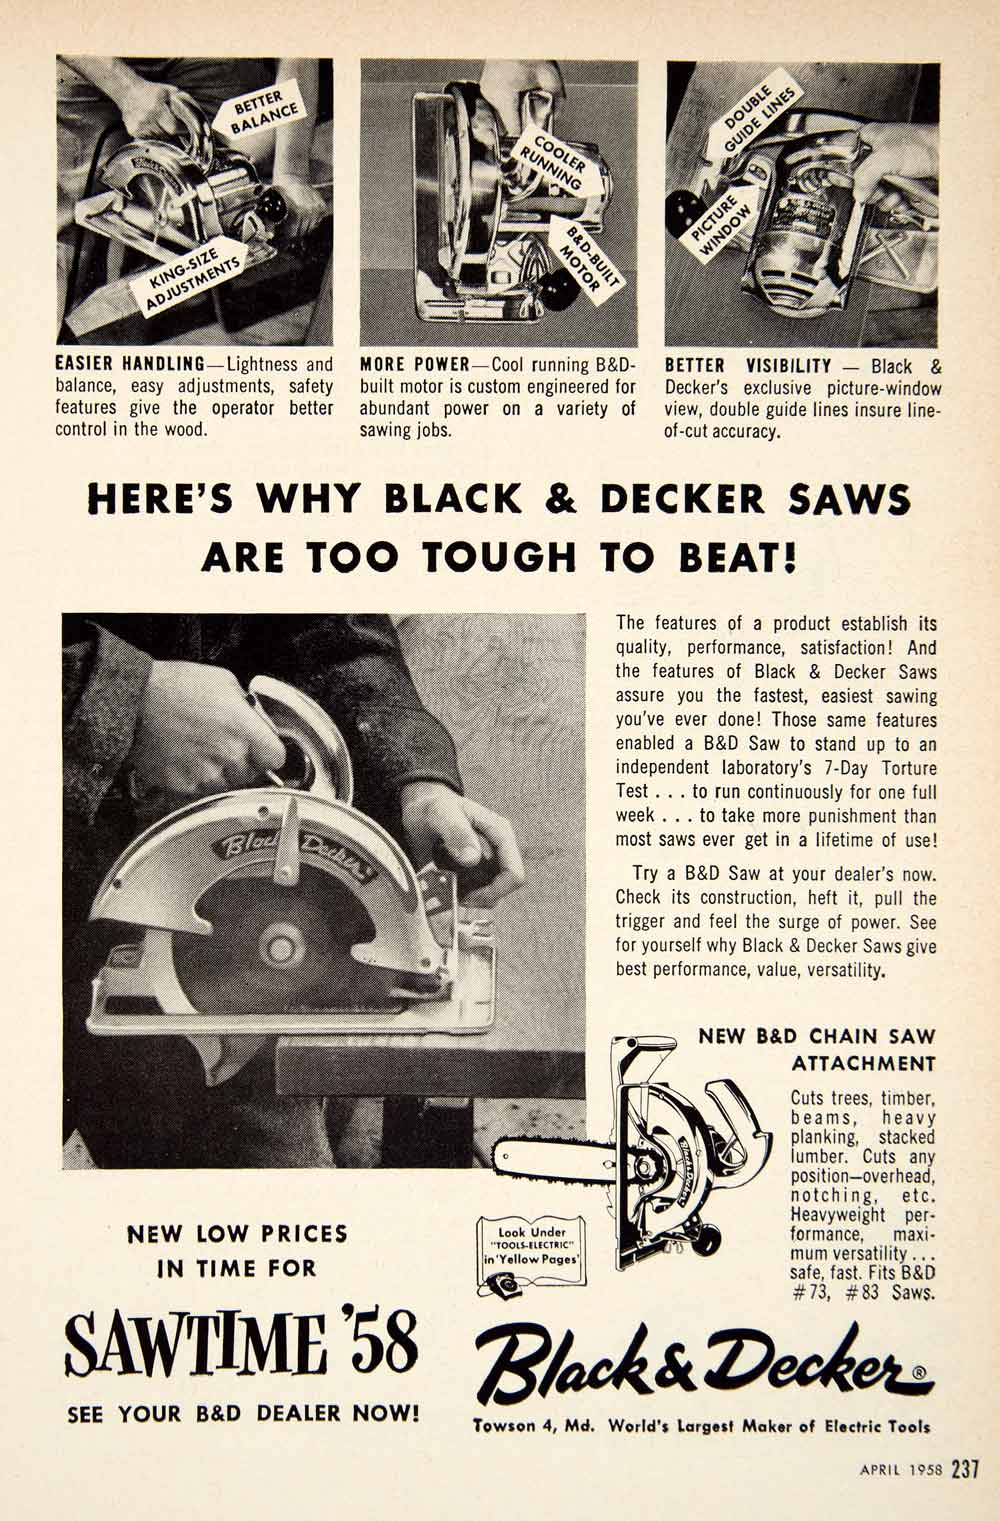 1958 Ad Black & Decker Saw Power Tool Chainsaw Hardware Construction Towson PSC3